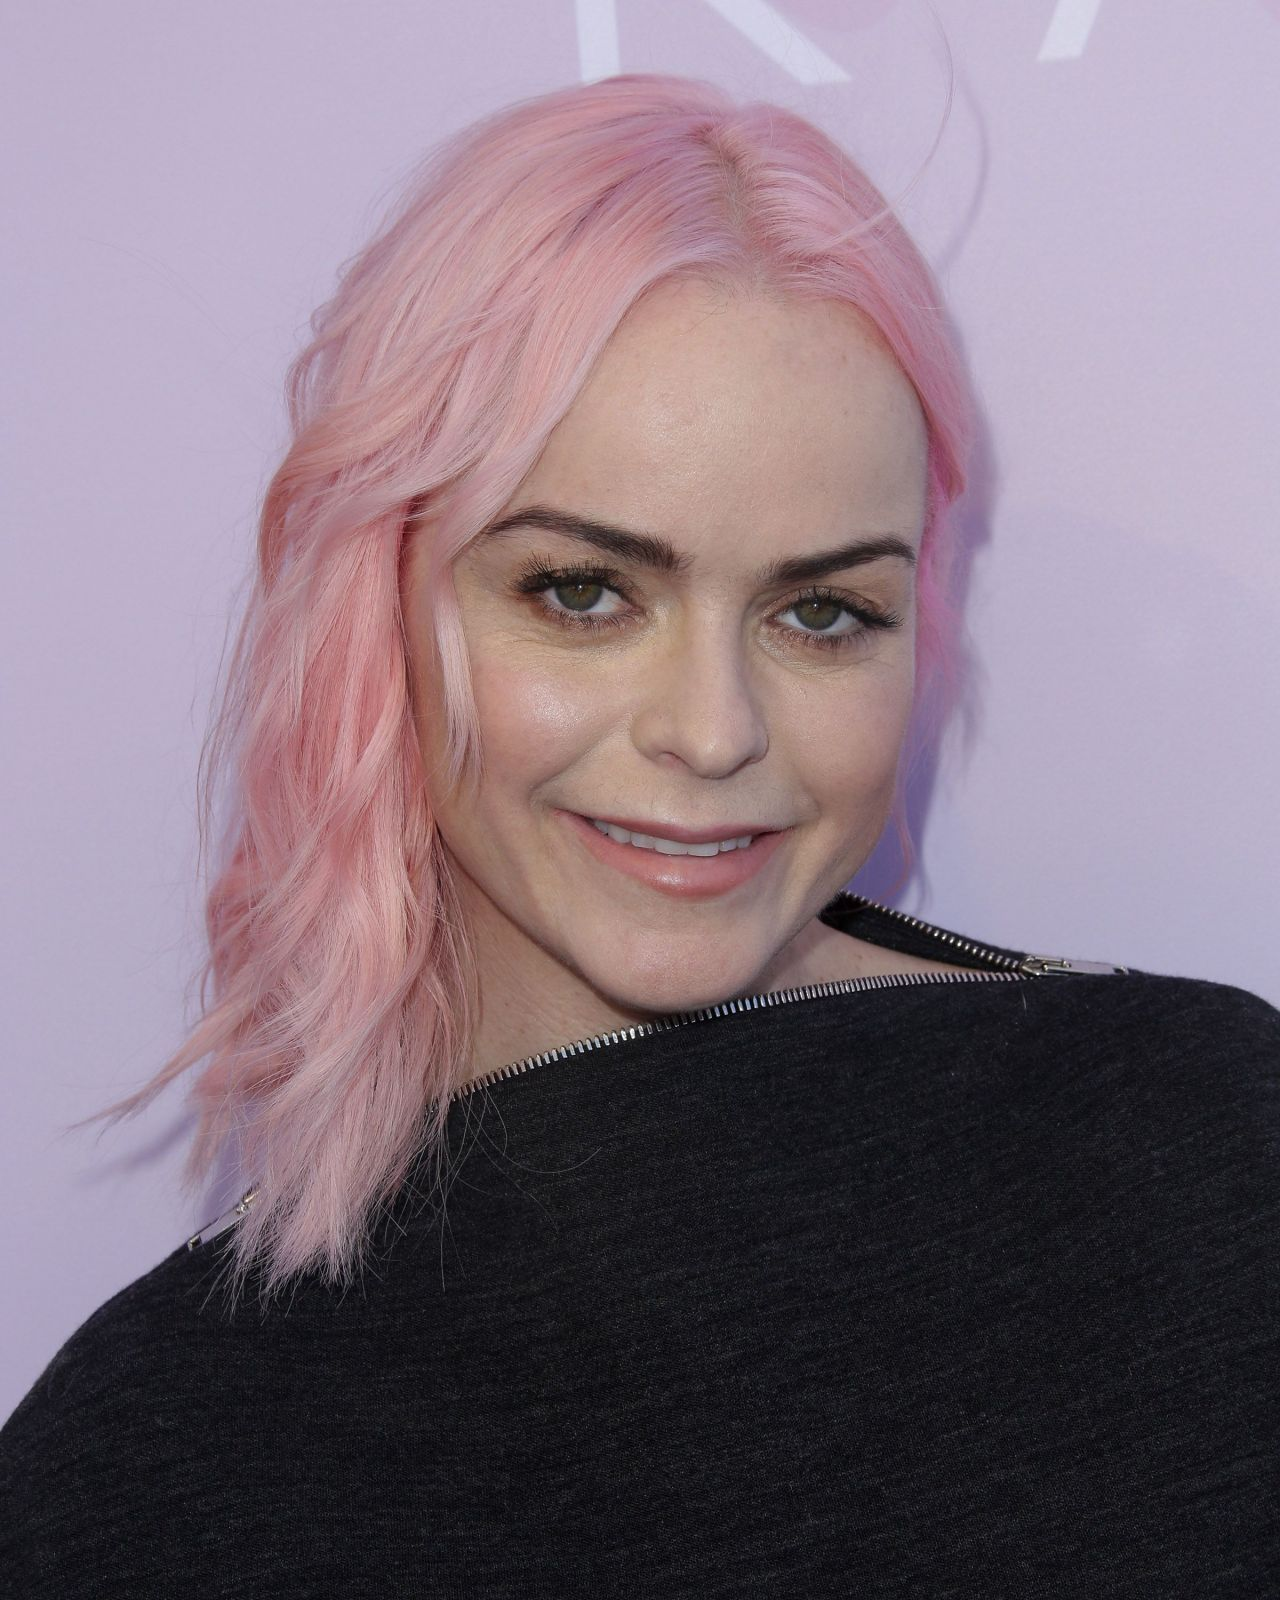 Taryn Manning Variety Awards Nominees Brunch In Los